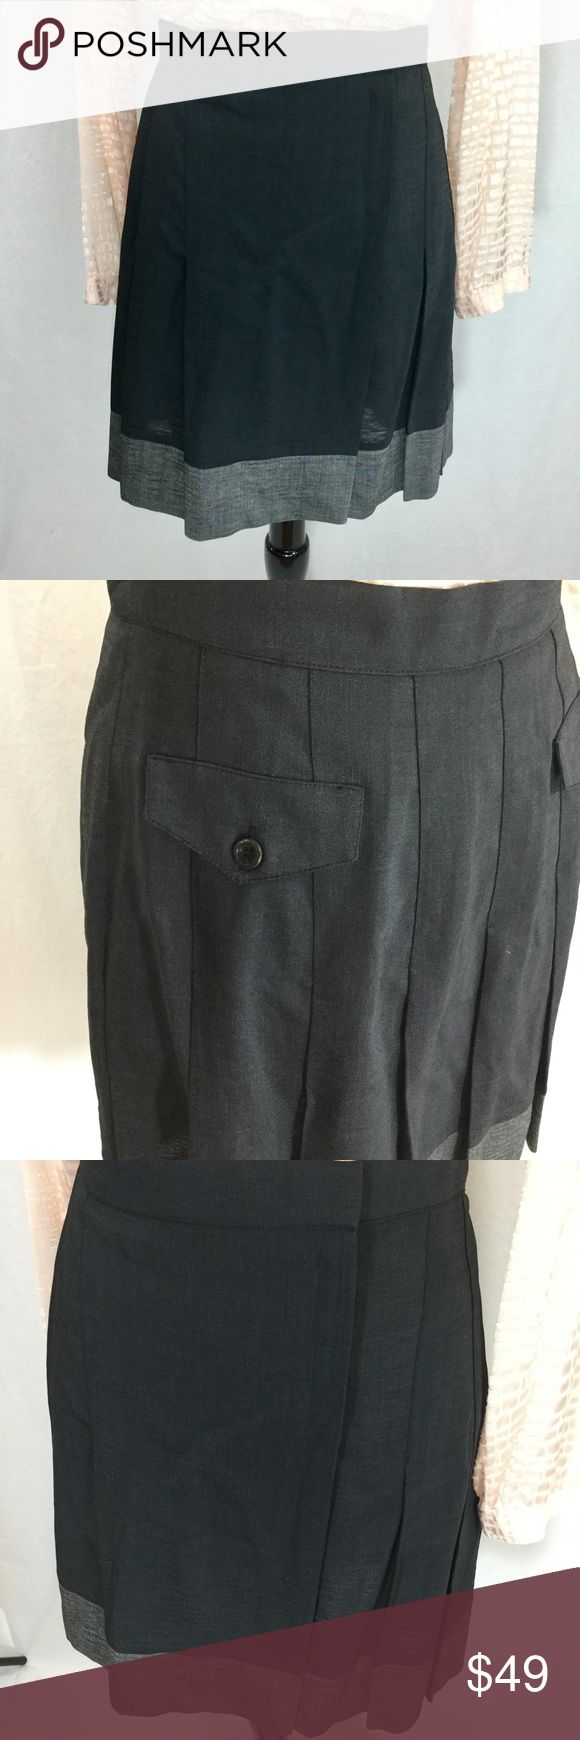 Karen Millen kilt skirt UK Size 14 US size 10 Velcro close kilt skirt from Karen Millen. UK size 14 equals US size 10. Approximately 19 inches long, 30 inch waist. Flap rear pockets, front pleats. Offers welcome. Thanks for shopping my closet! Karen Millen Skirts A-Line or Full